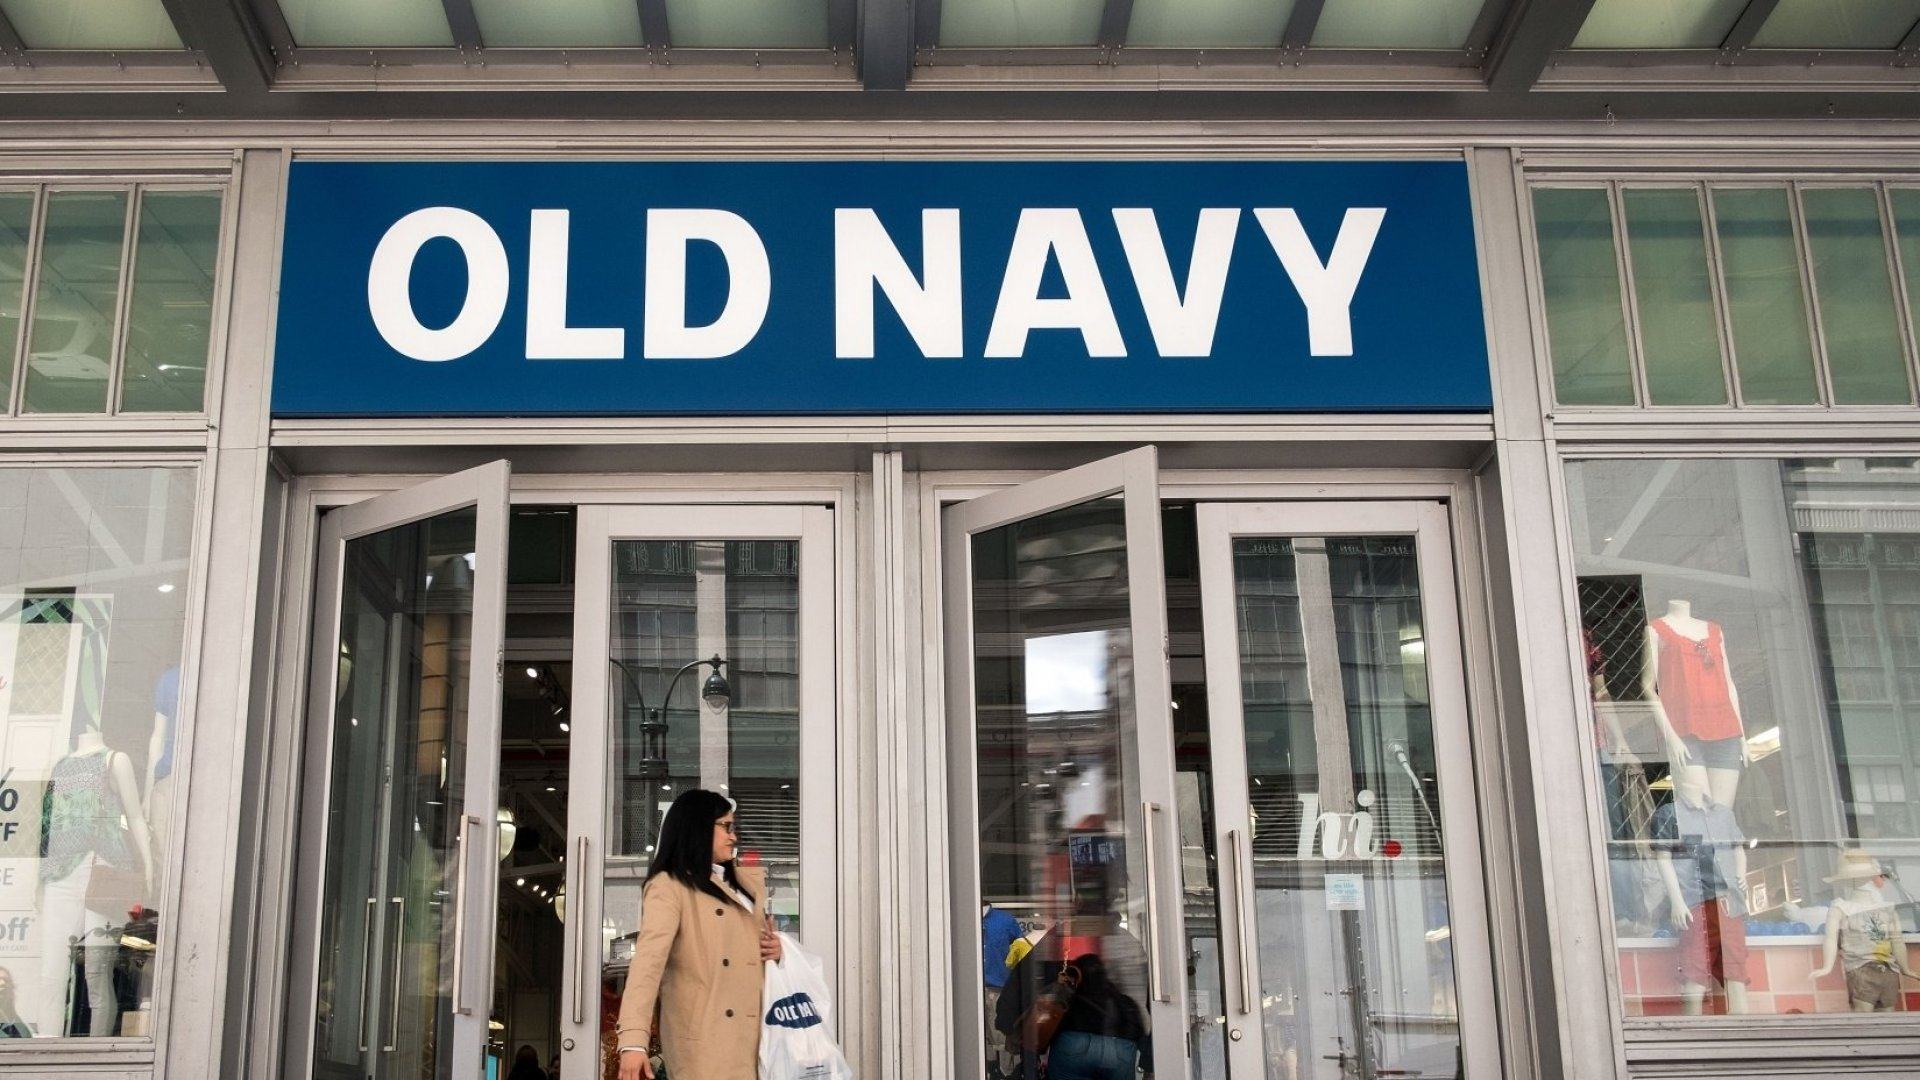 Old Navy Just Made a Huge Announcement. Is It Brilliant or a Huge Mistake?